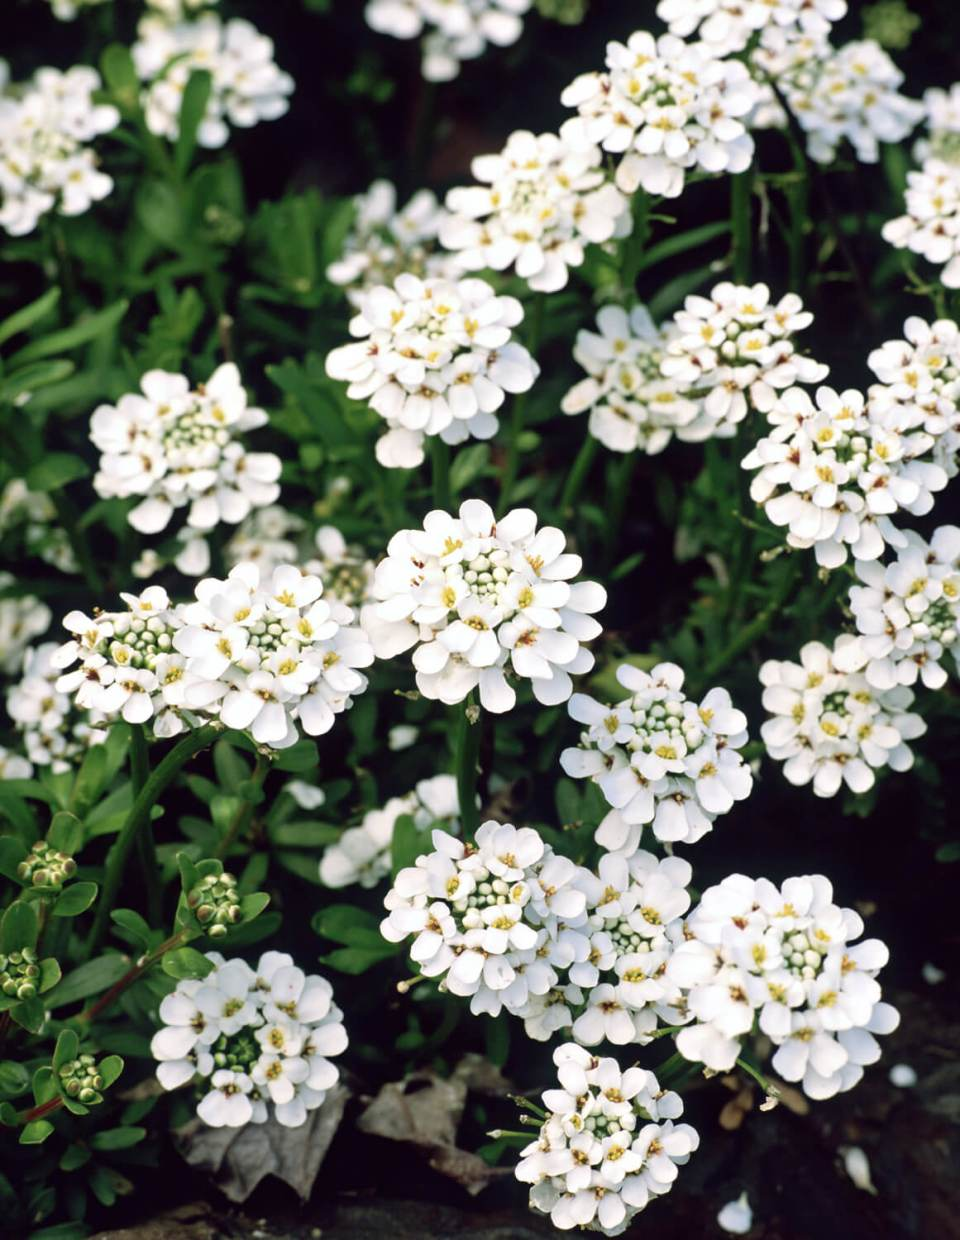 Candytuft (Iberis) | Perennial Flowers All Season: Perennial Garden Design Guide for Blooms in Spring Summer and Fall